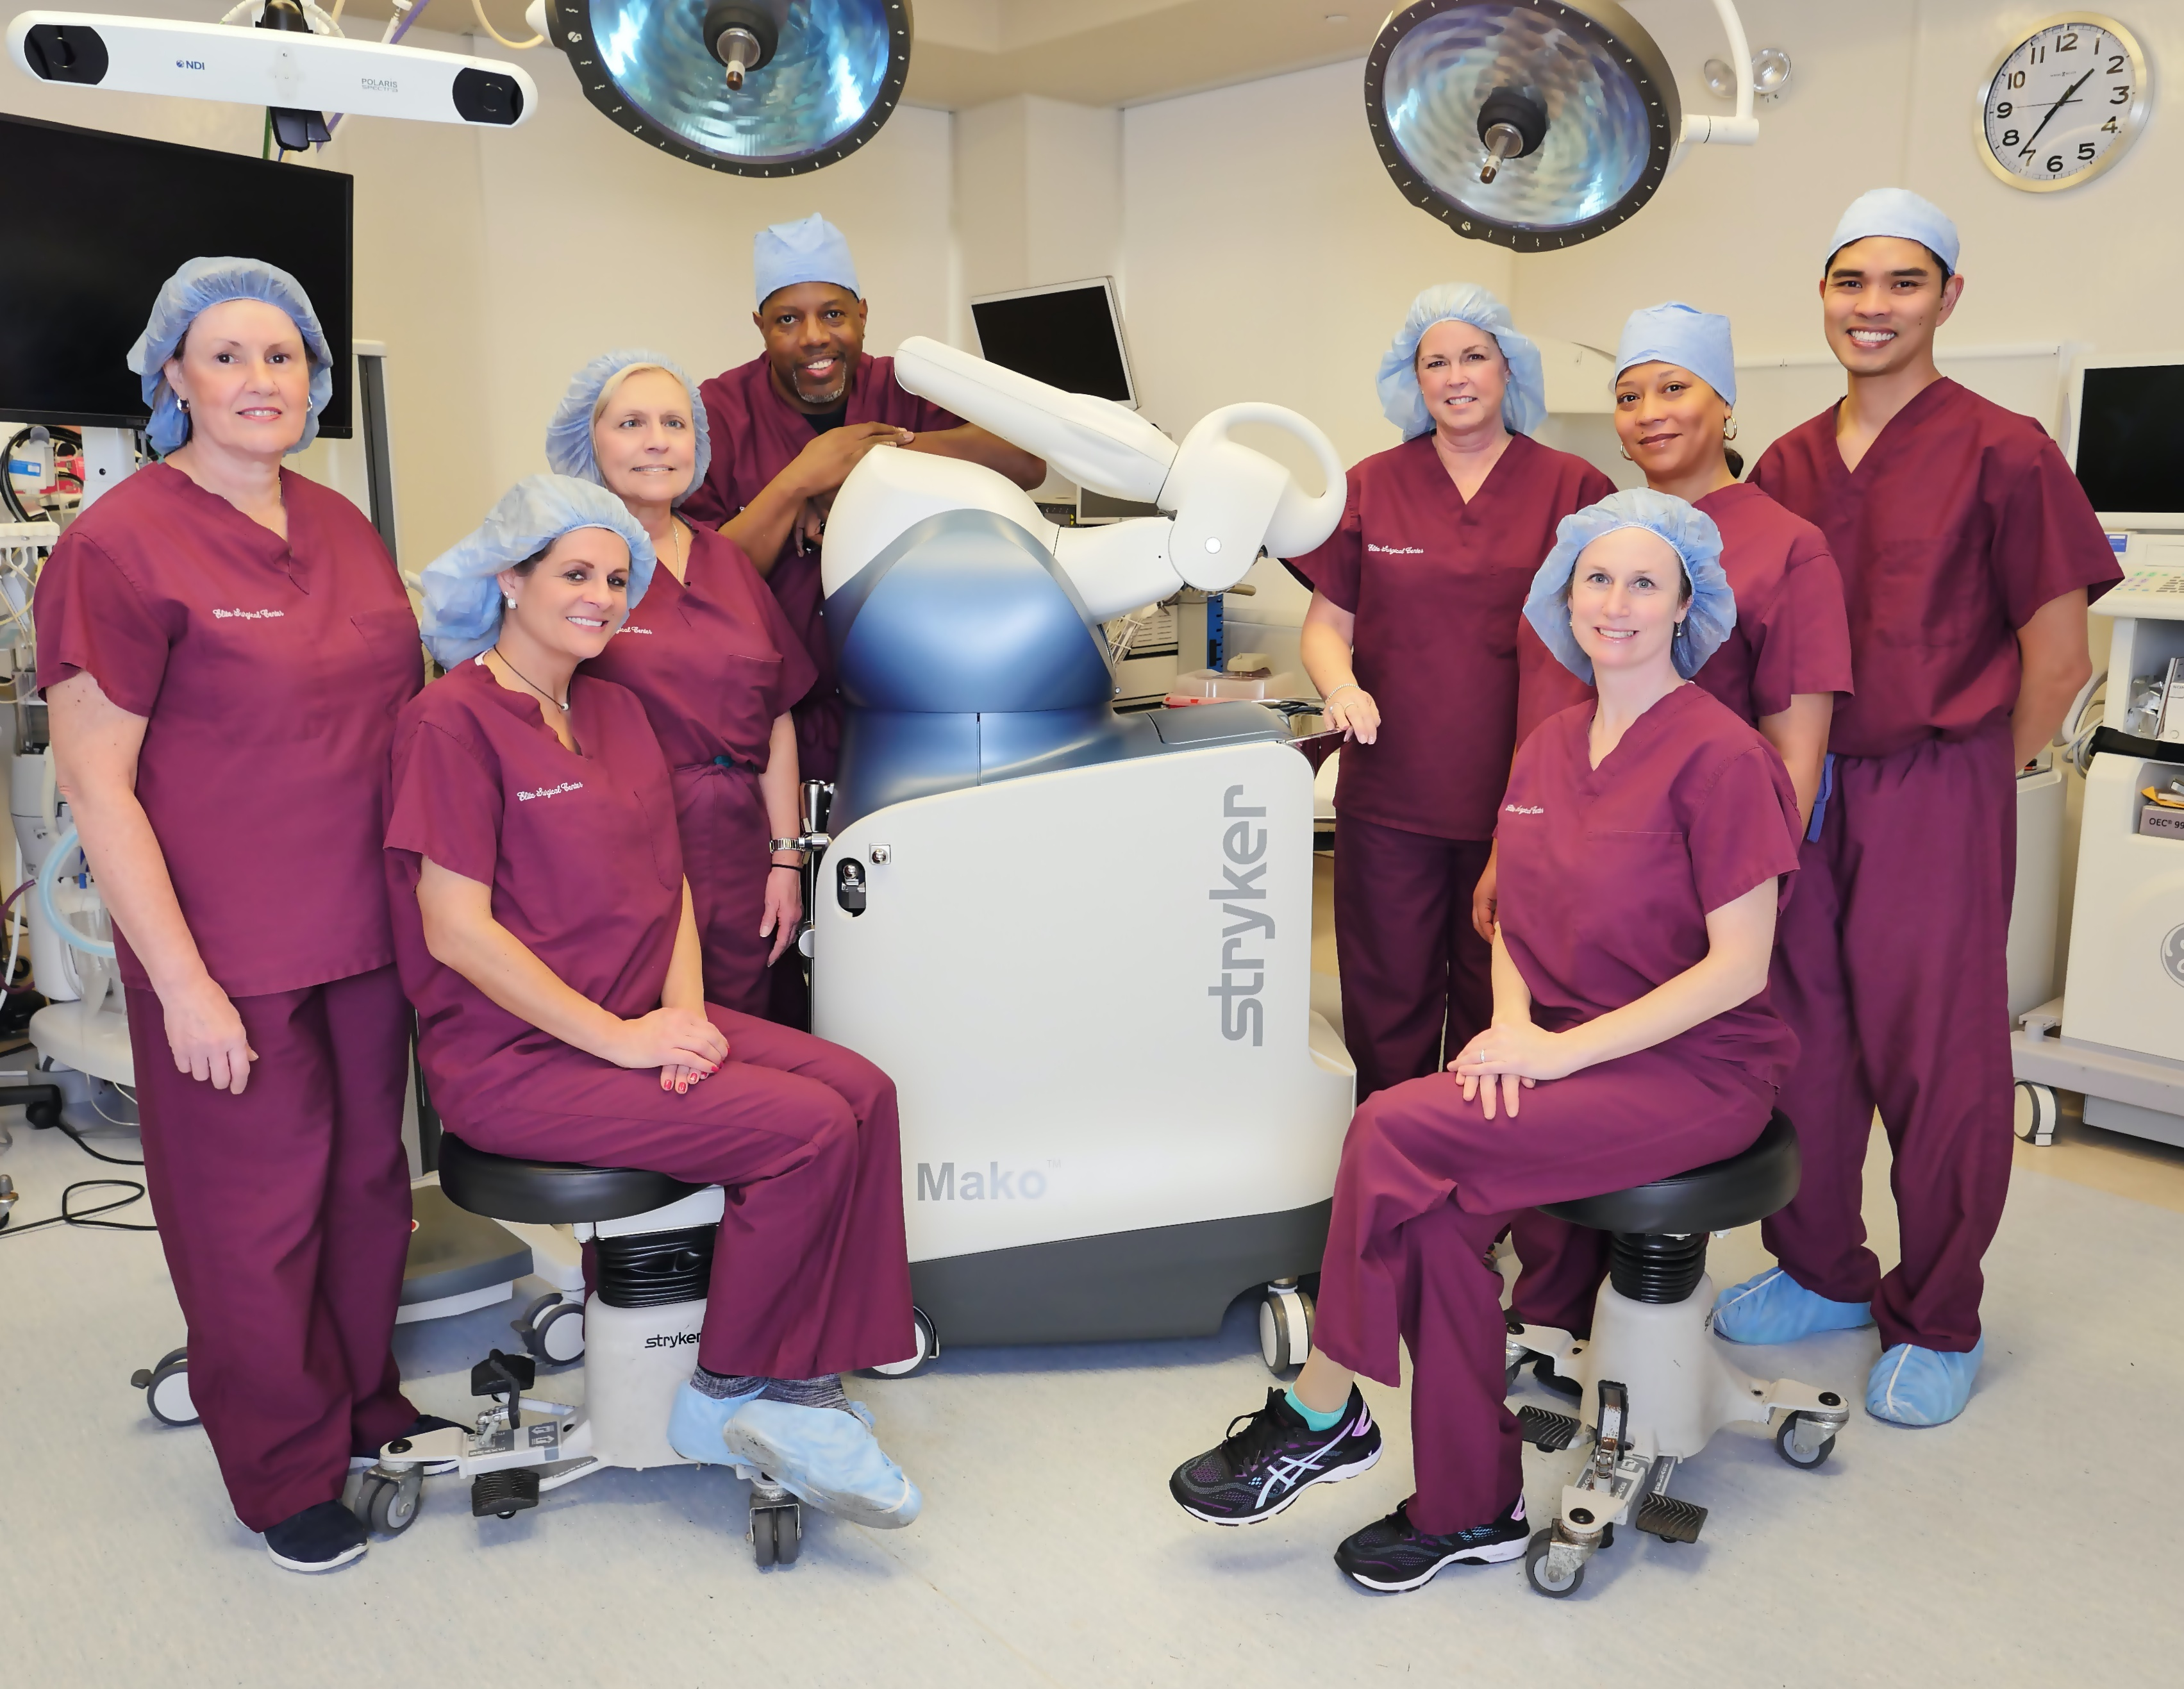 Staff at Elite Surgical Center pose with the Robot Arm